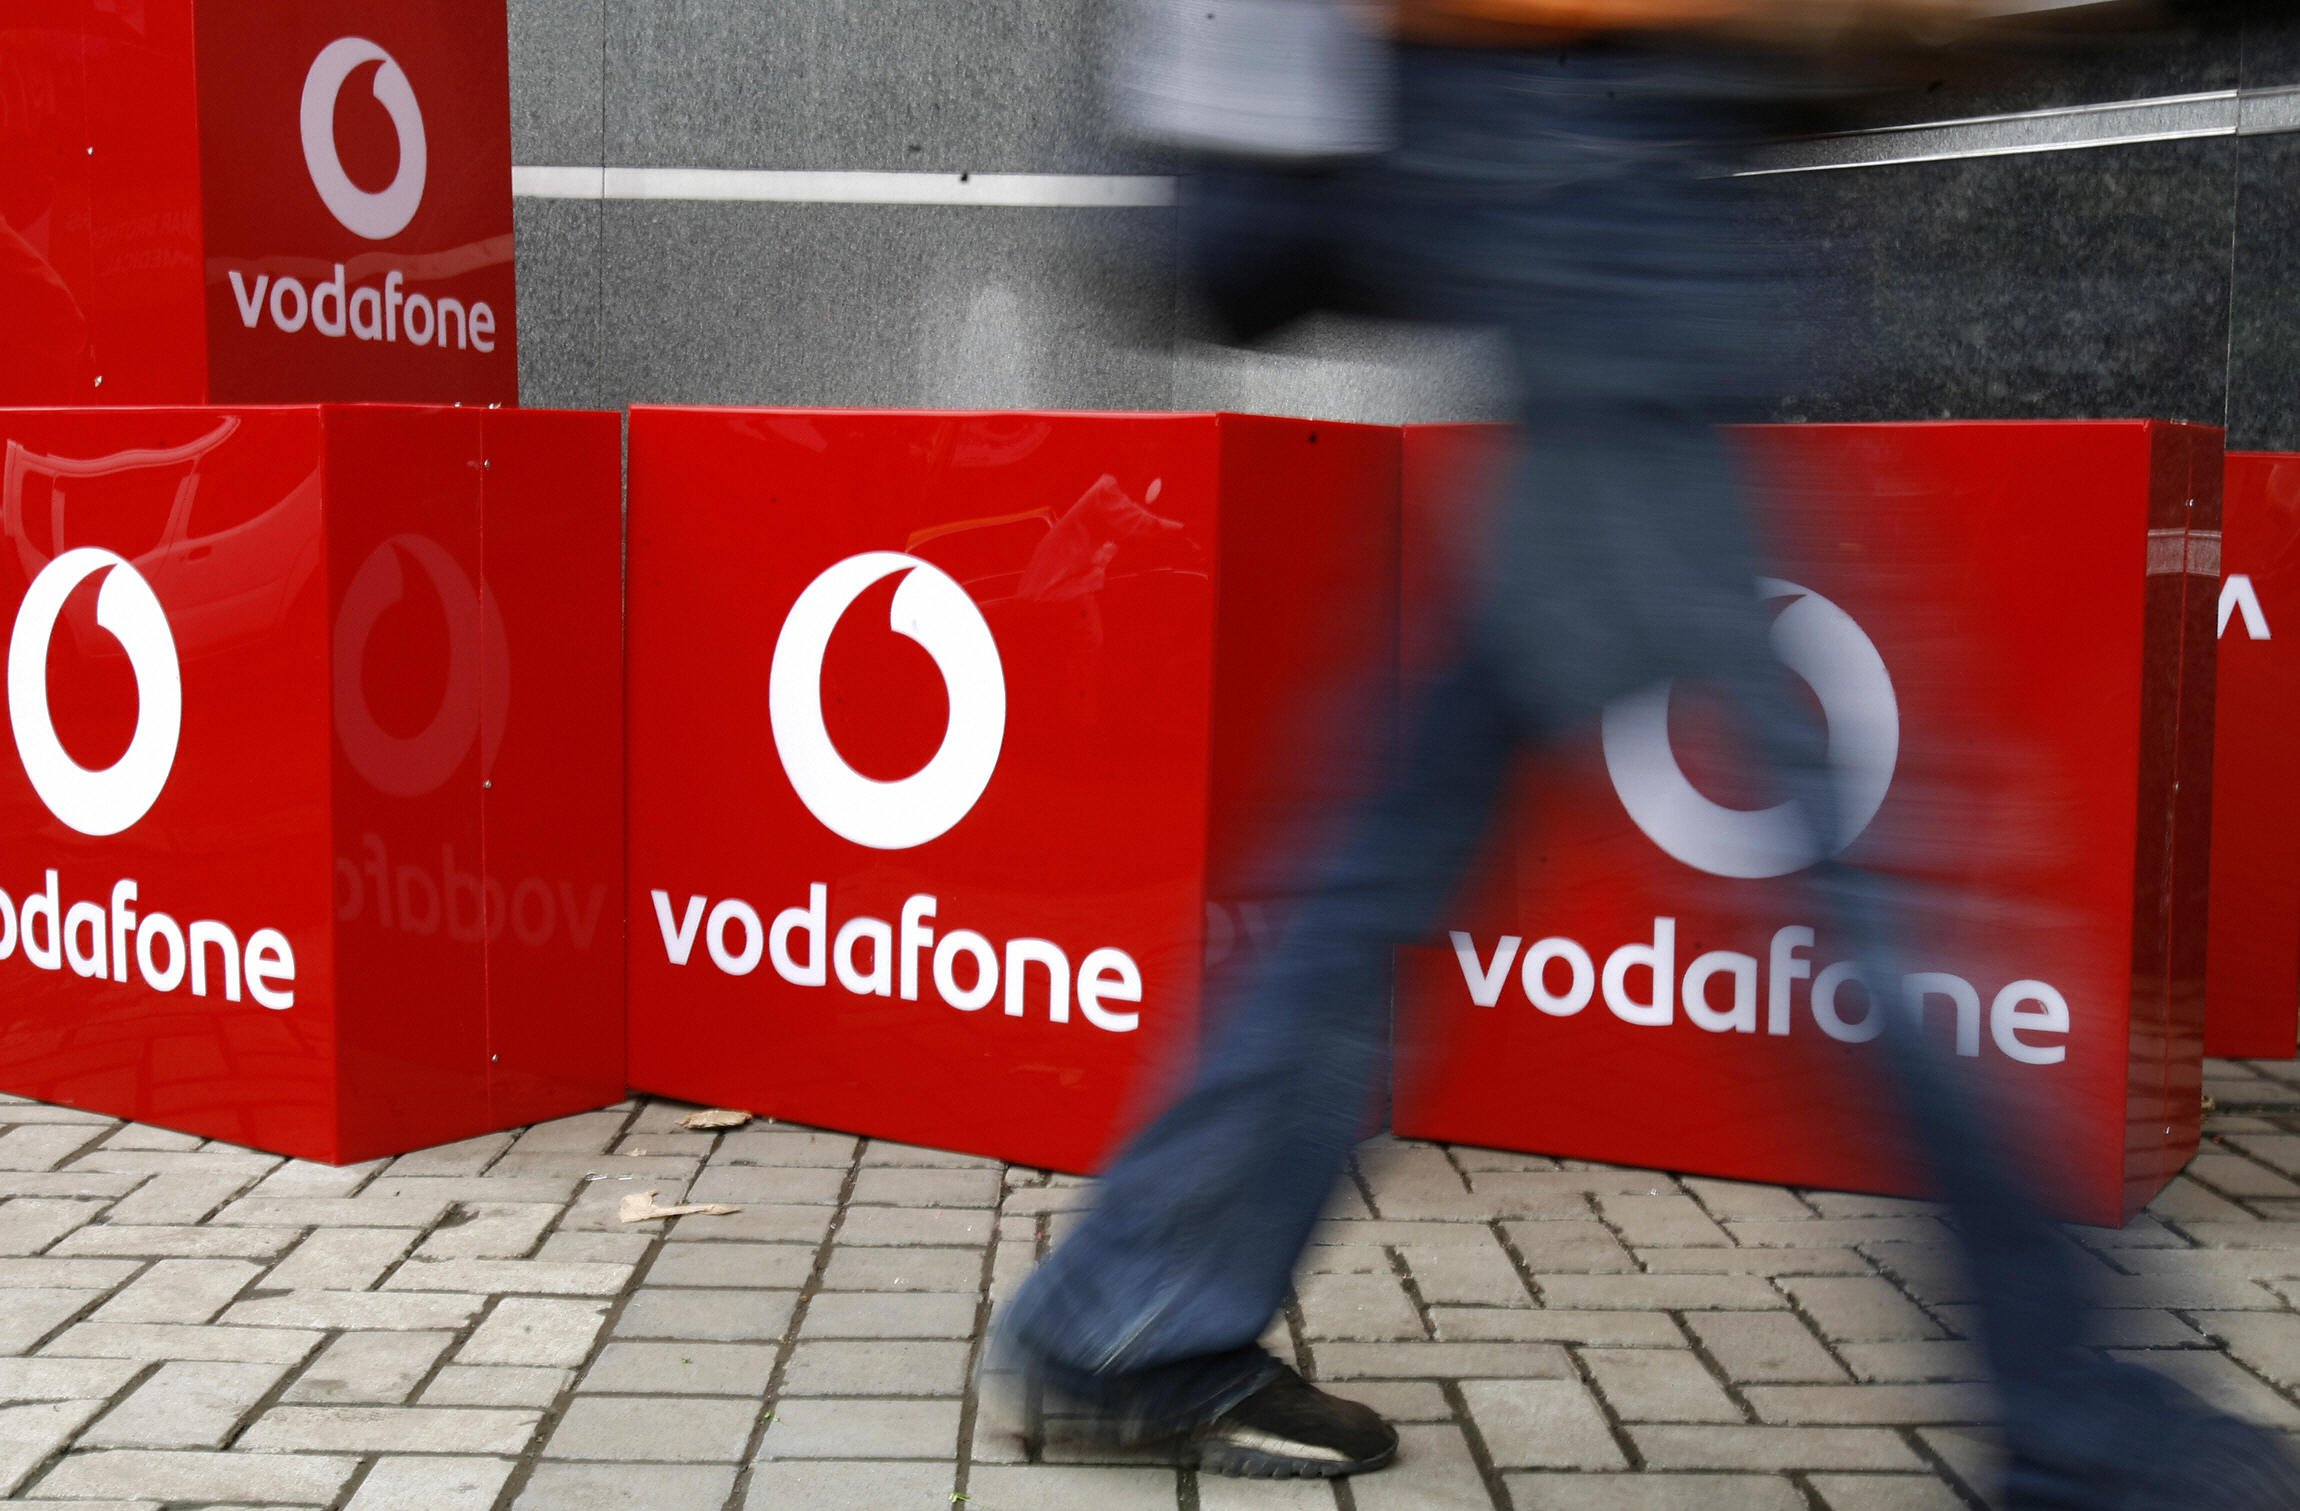 """An Indian man walks past the signboard of telecom firm """"Vodafone"""" outside the corporate office in India's financial capital Mumbai, 20 September 2007. Vodafone purchased Hutchison Essar India in March 2007 for 11.1-billion USD. The re-branding marks the completion of UK-based Vodafone's acquisiton of Hong Kong-based Hutchison Telecommunication Limited's Indian assets in May 2007. The Indian unit's formal name is Vodafone Essar as the other partner is Indian steel-to-shipping conglomerate Essar. AFP PHOTO/ Sajjad HUSSAIN (Photo credit should read SAJJAD HUSSAIN/AFP/Getty Images)"""